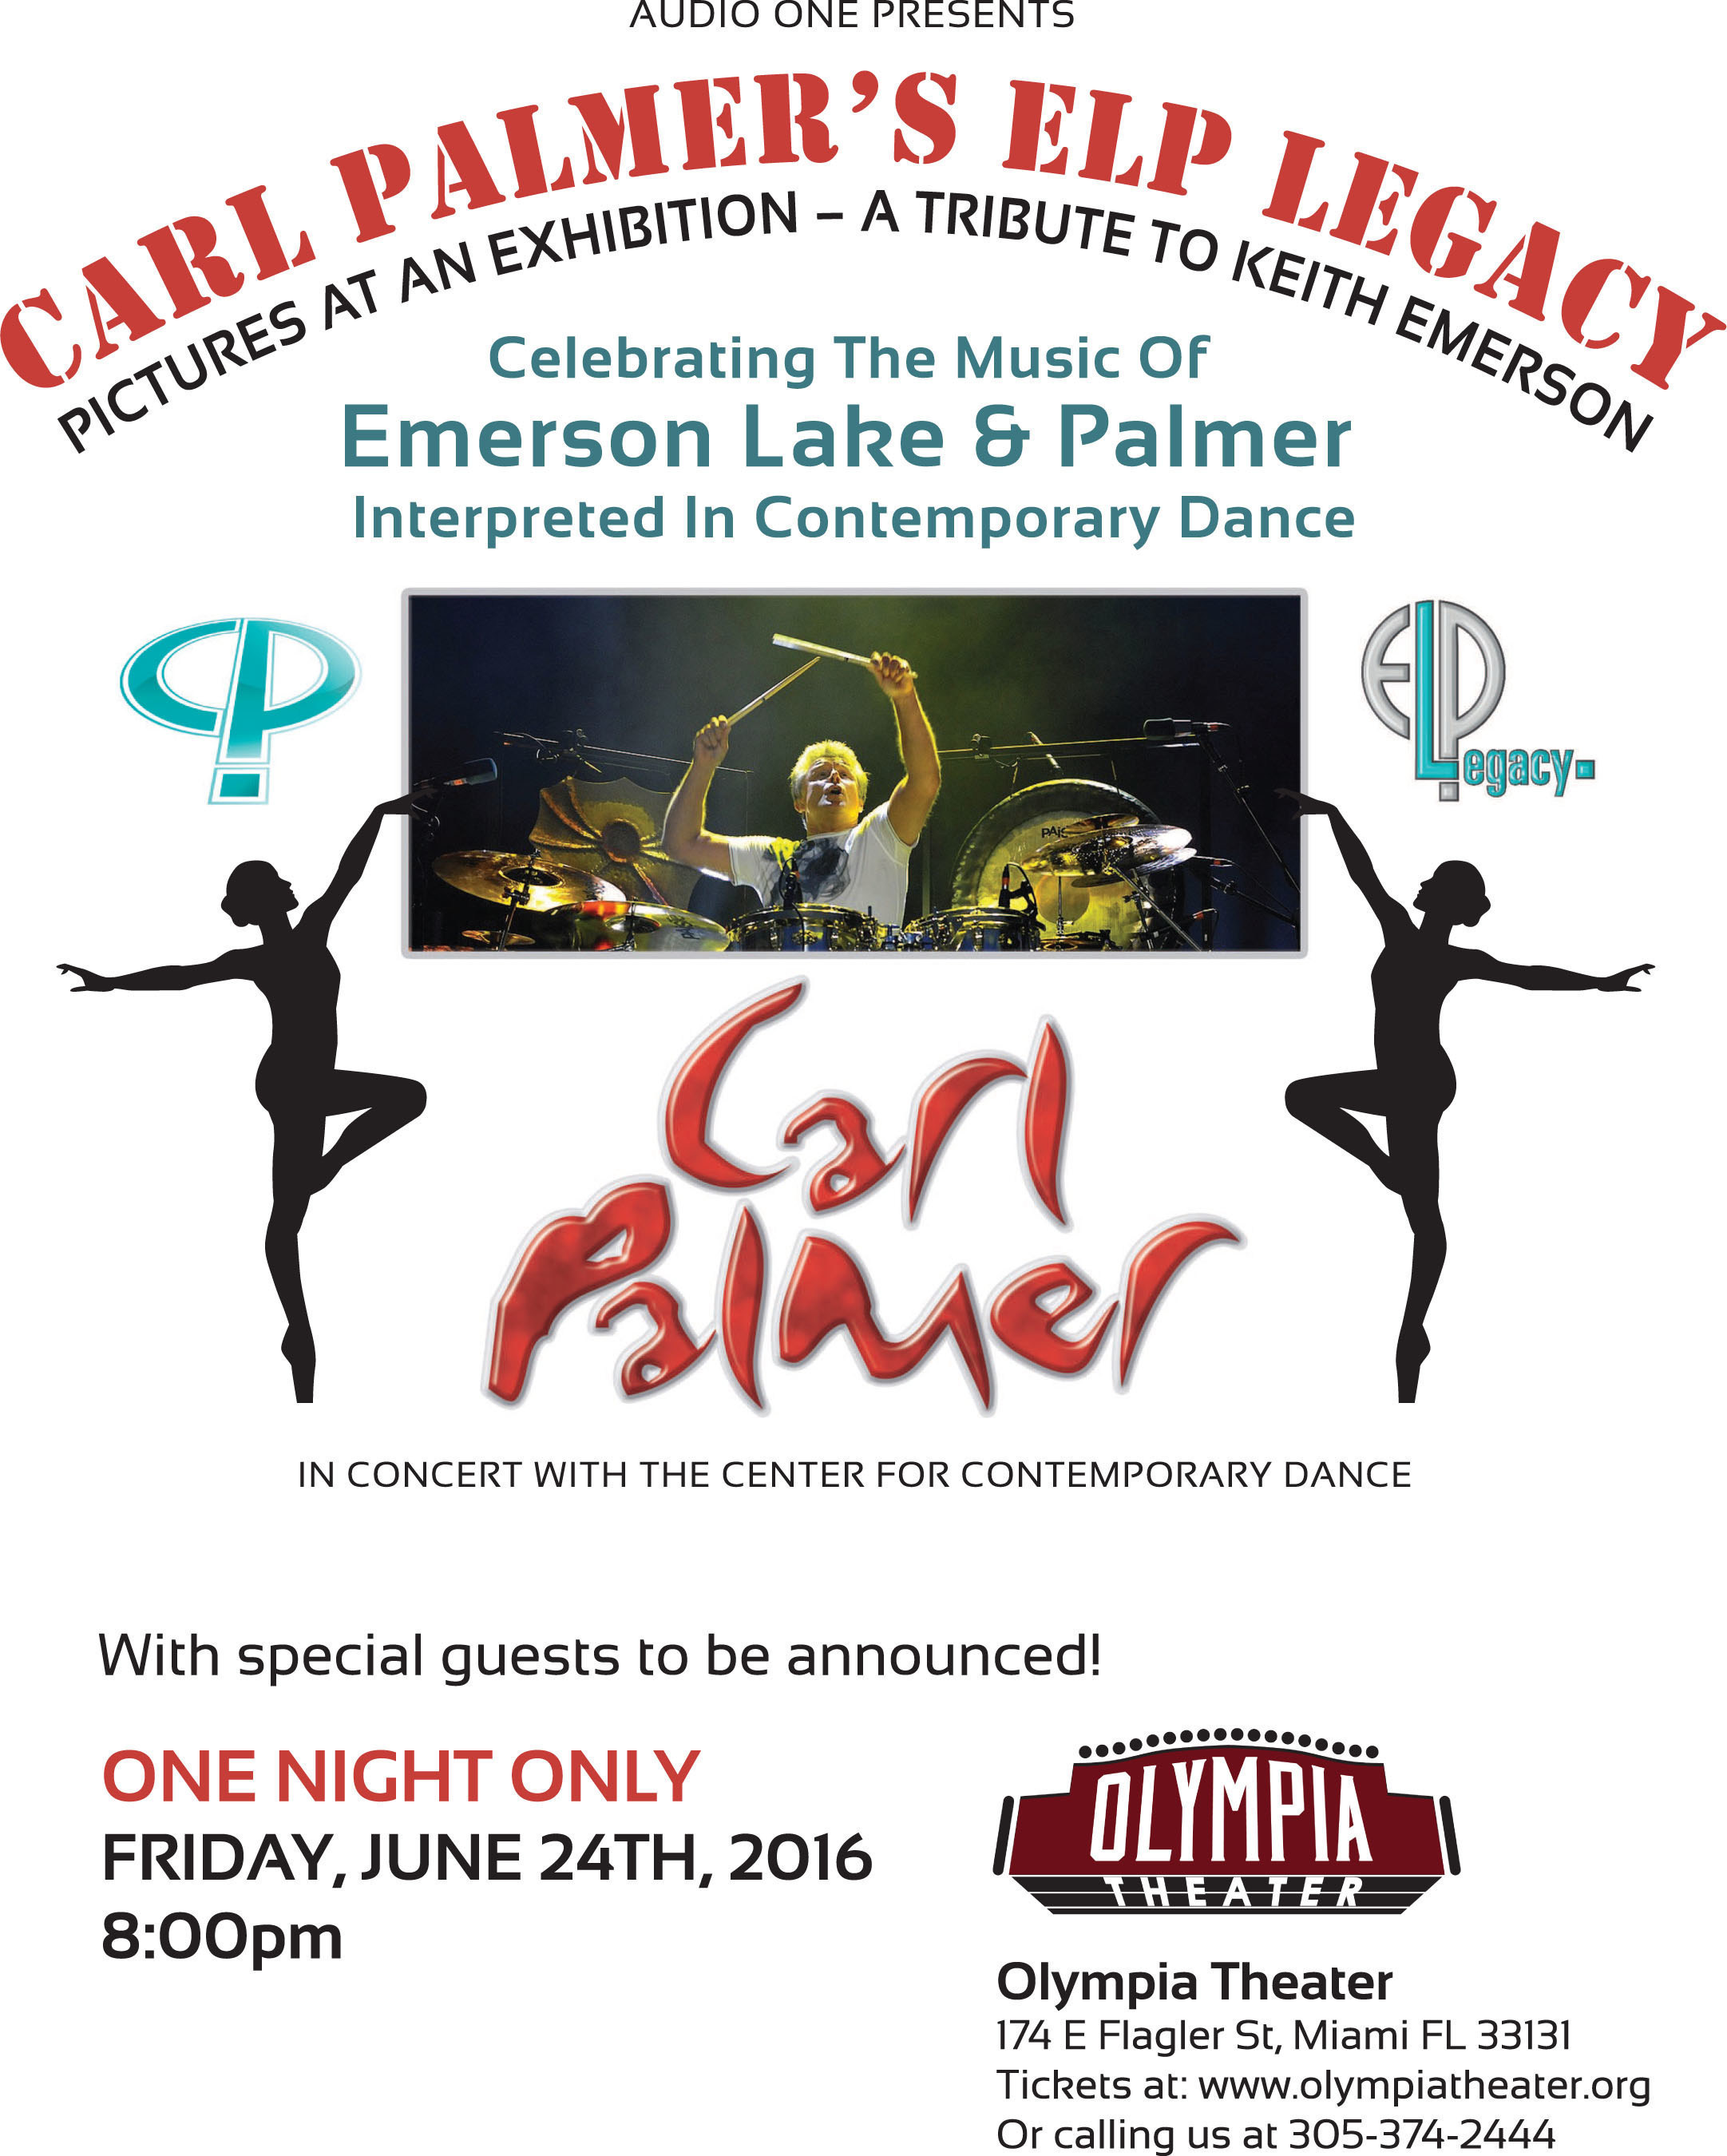 Carl Palmer's ELP Legacy Announces 9th Tour of North America.